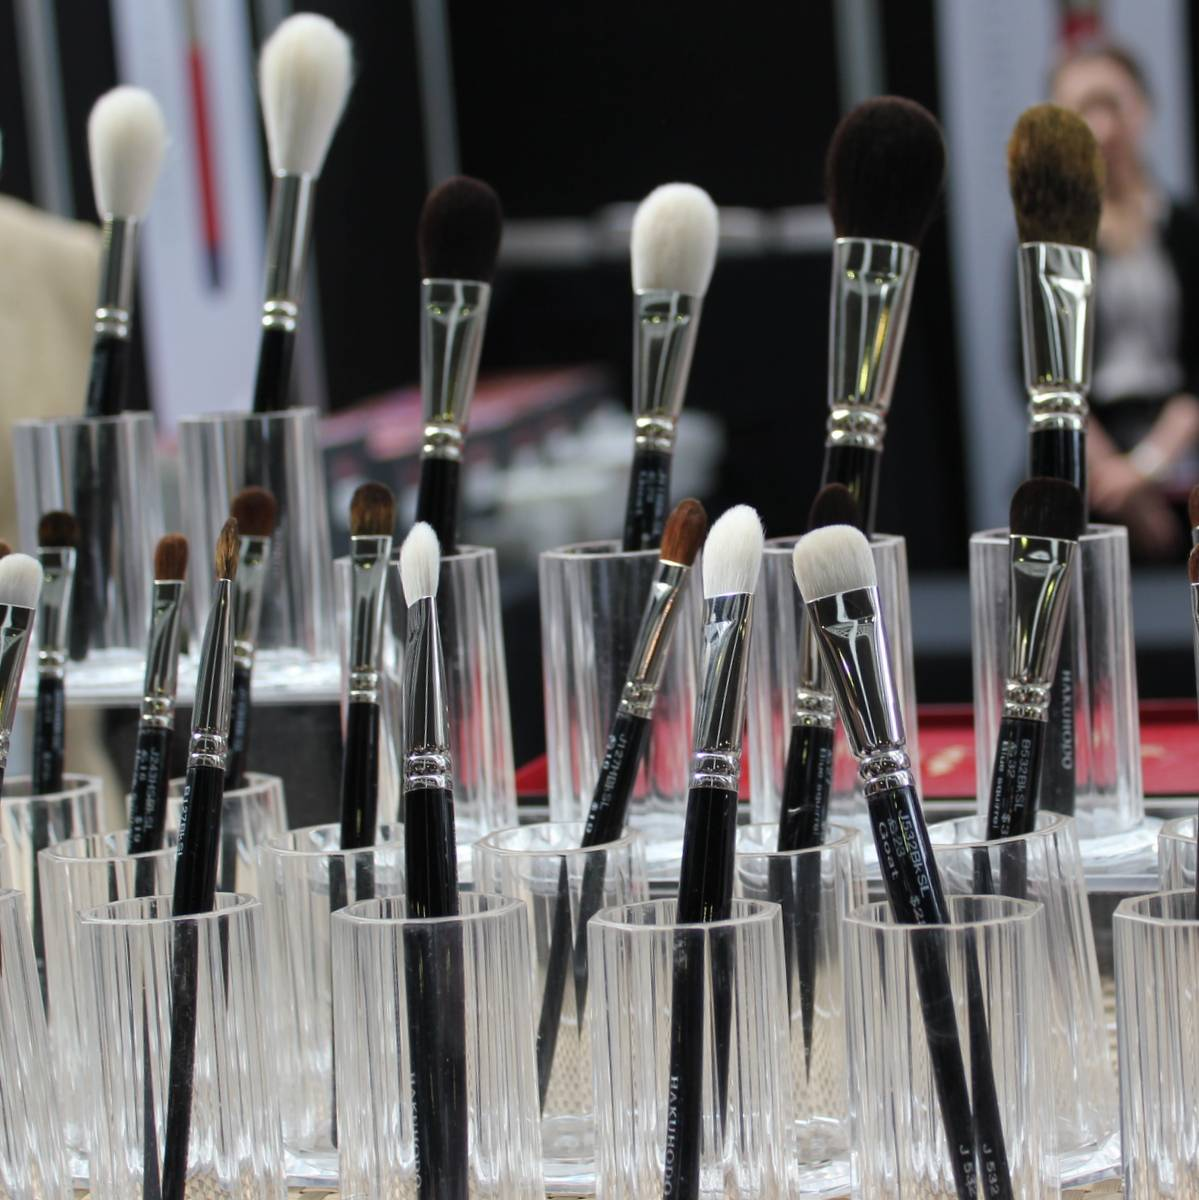 IMATS 2017 Hakuhodo Brushes